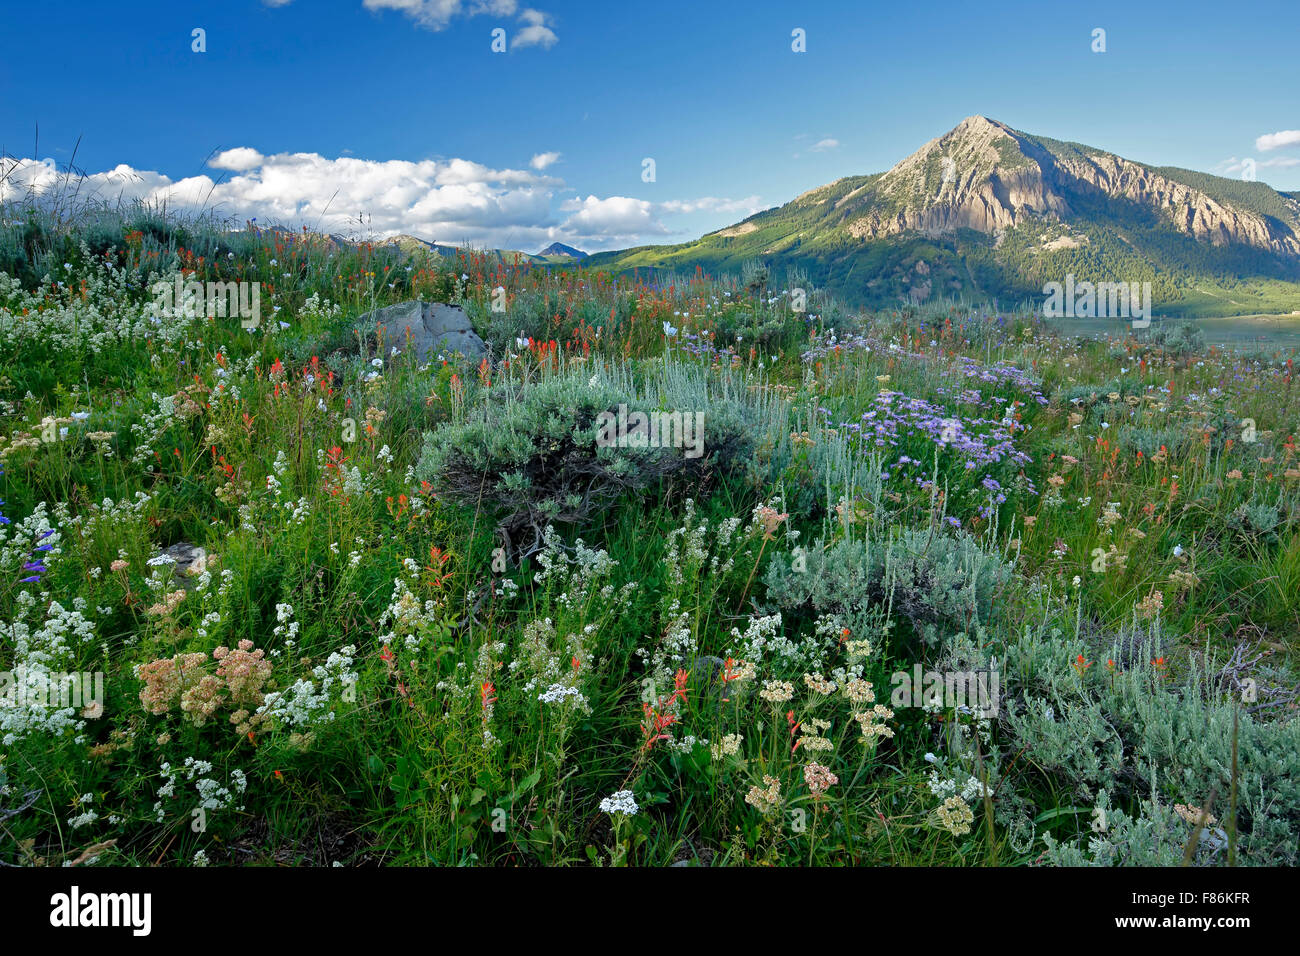 Flores silvestres y Mount Crested Butte (12,162 ft.), Crested Butte, en Colorado, EE.UU. Imagen De Stock